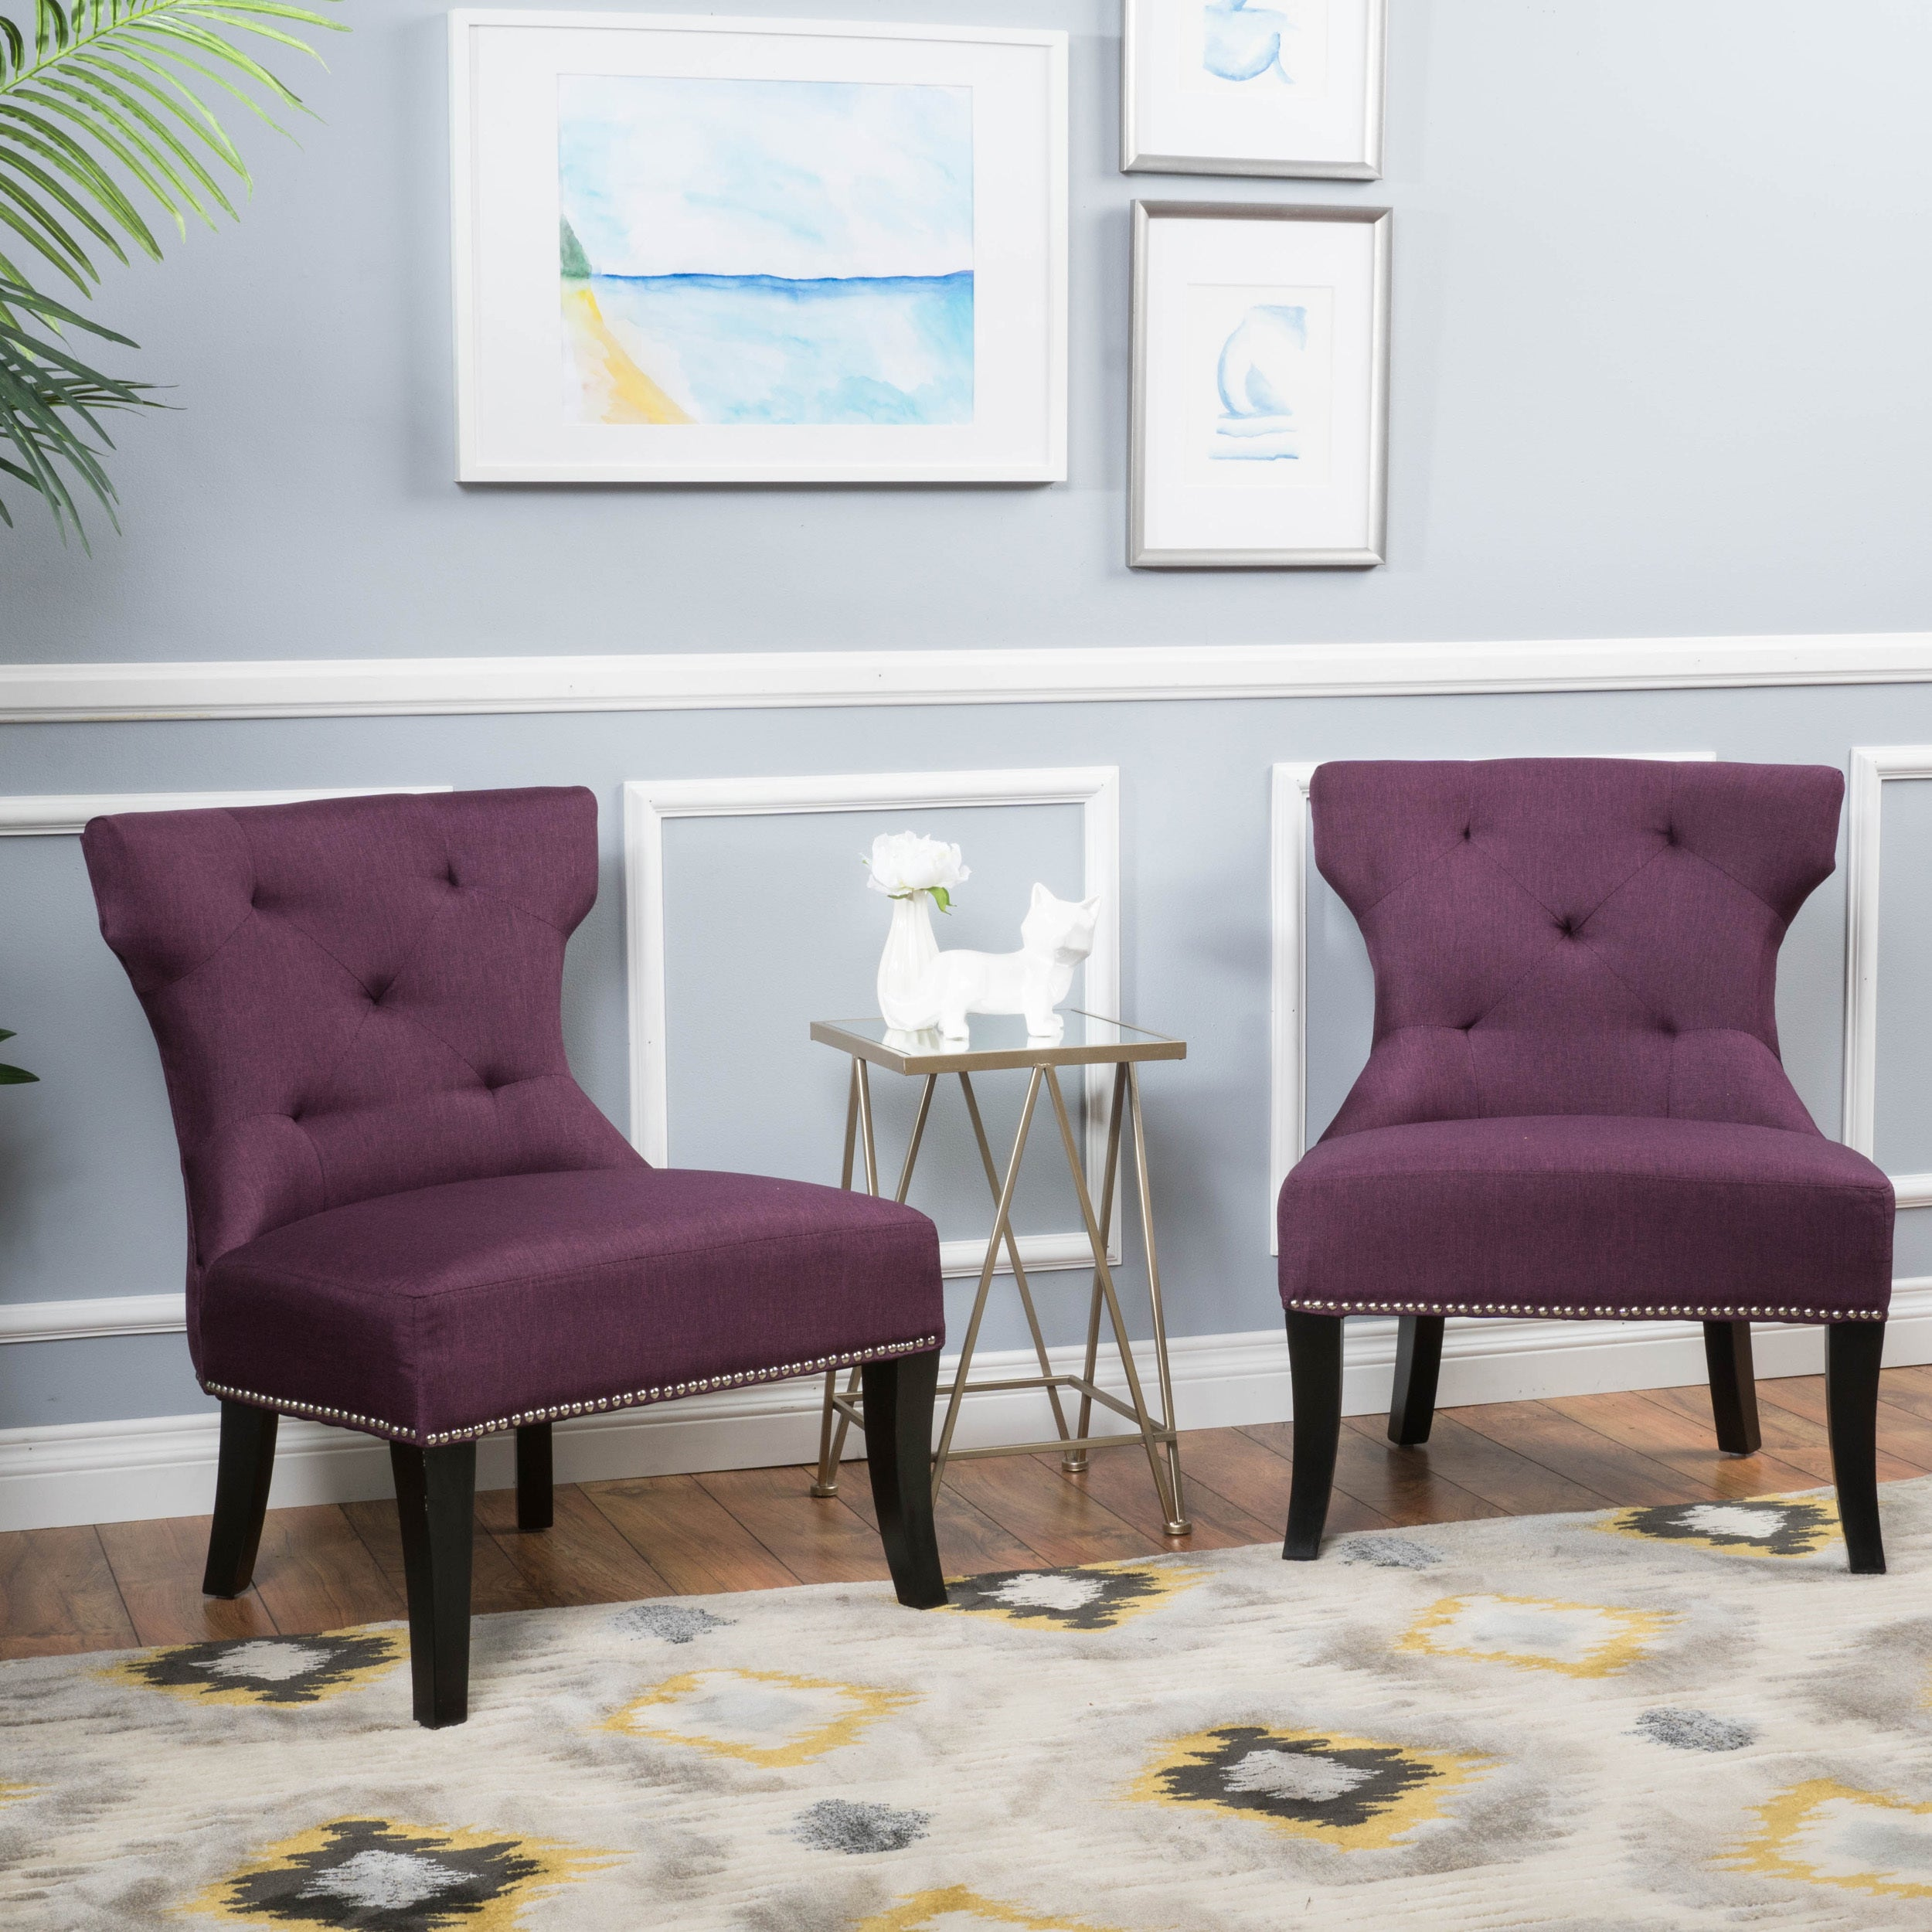 Amber Studded Fabric Accent Chair Set of 2 by Christopher Knight